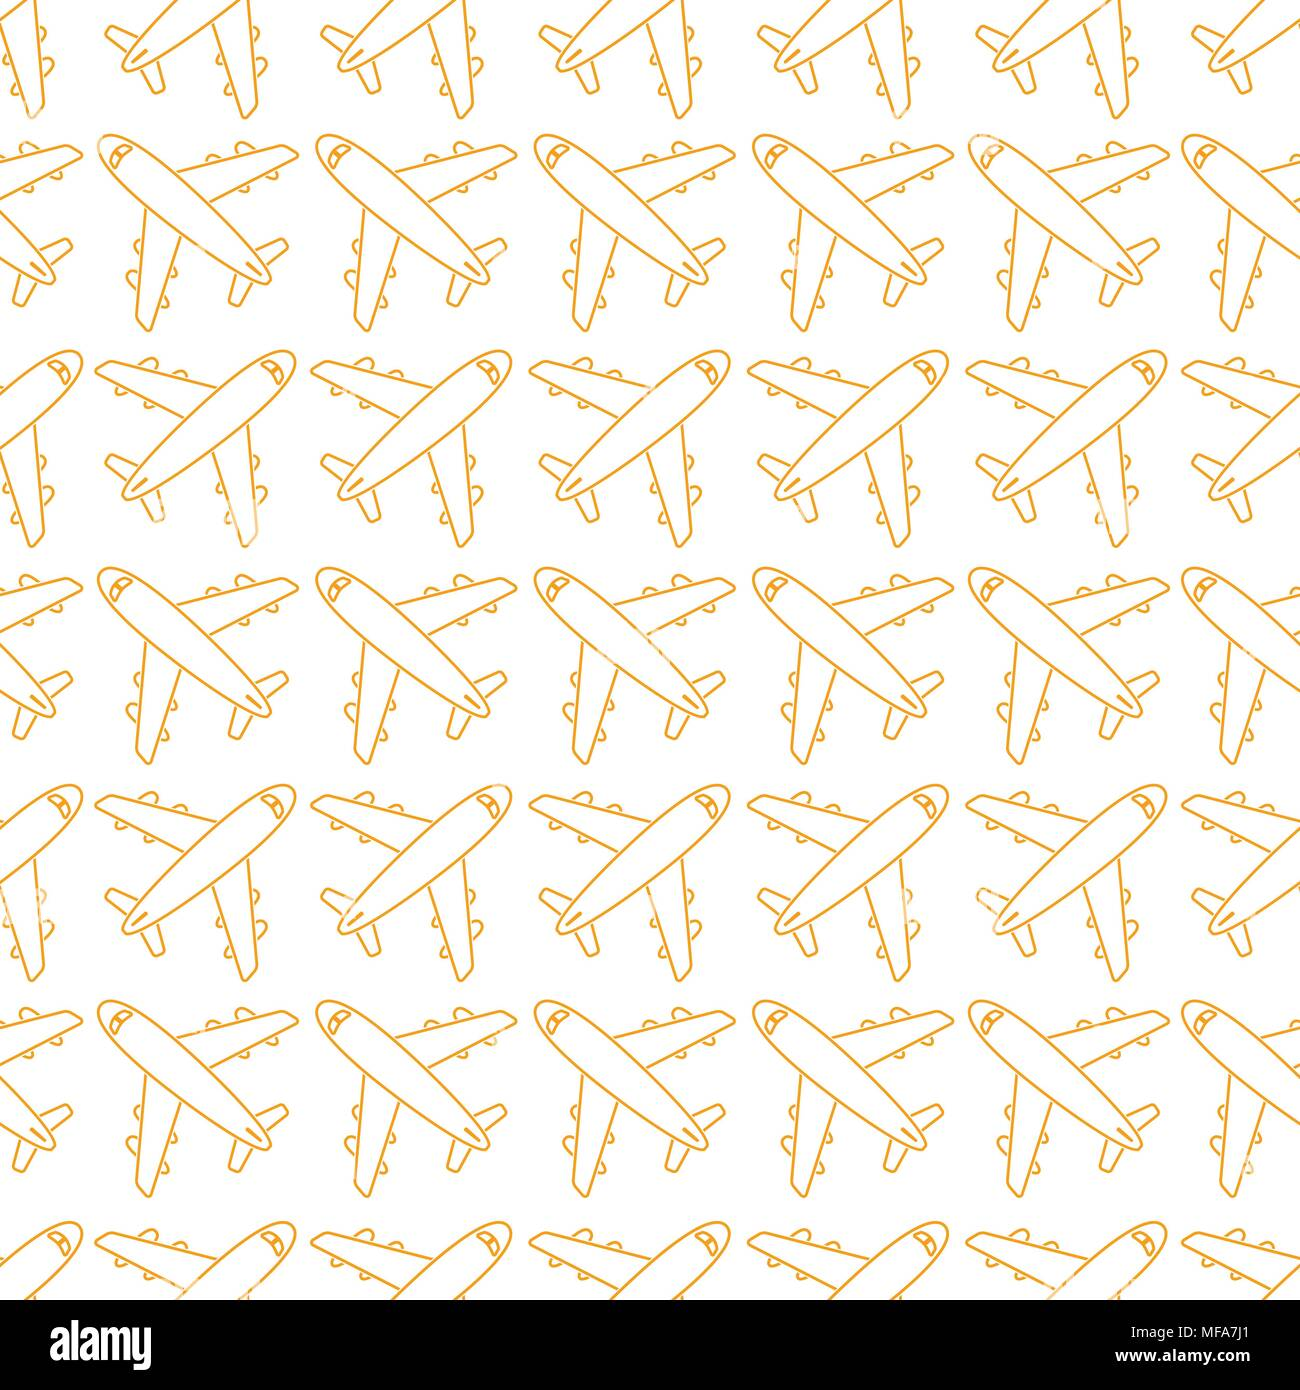 Seamless pattern with airplanes. Vector illustration - Stock Vector